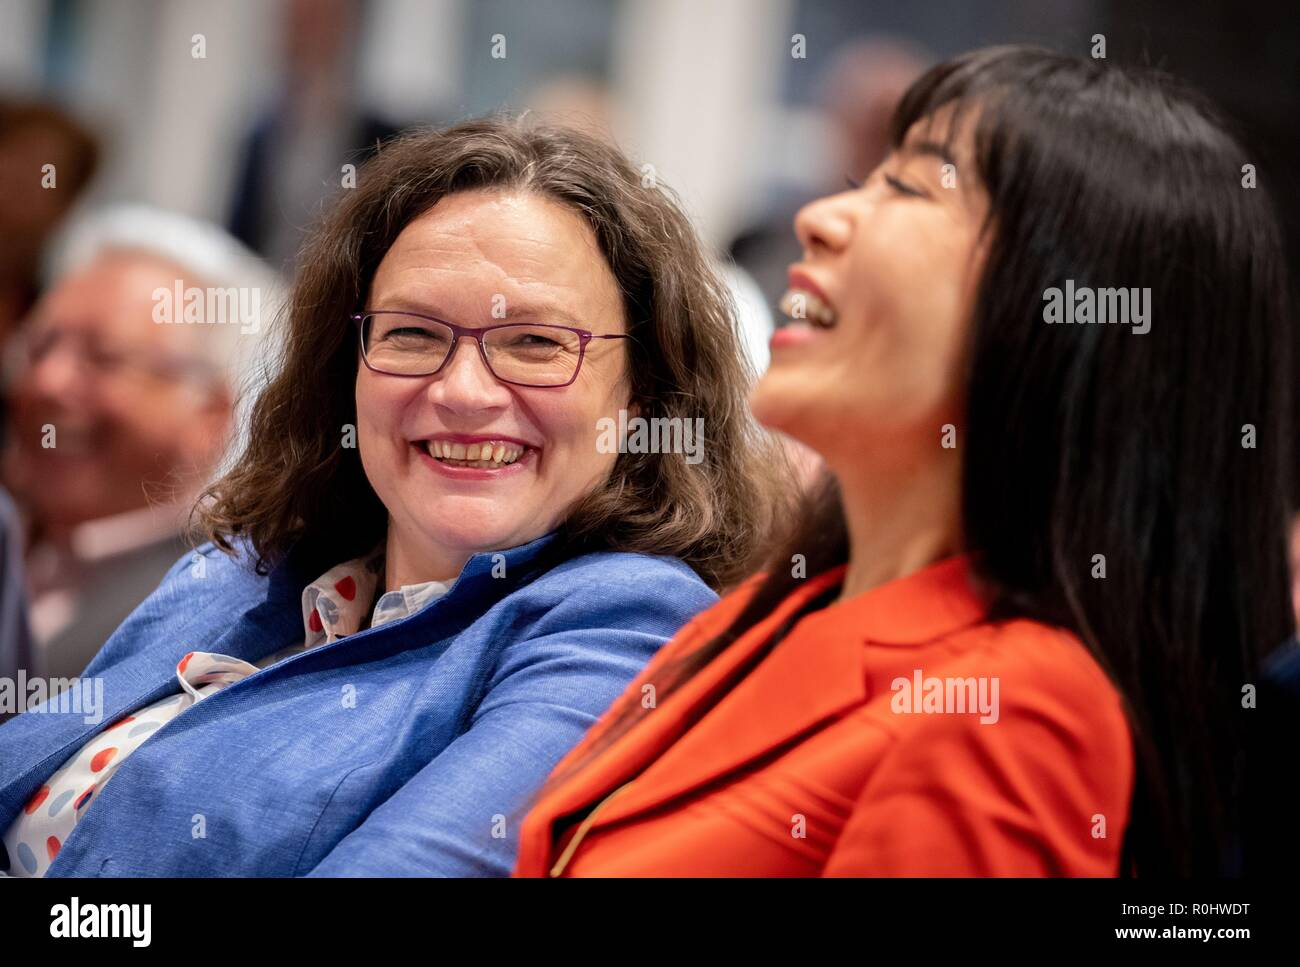 Berlin, Germany. 05th Nov, 2018. Andrea Nahles (l), parliamentary party leader of the SPD and SPD party leader, and Schröder-Kim So-yeon take part in the panel discussion: The 'red-green project' for the 20th anniversary of Gerhard Schröder's election as Chancellor in the Friedrich-Ebert-Stiftung. Credit: Kay Nietfeld/dpa/Alamy Live News - Stock Image